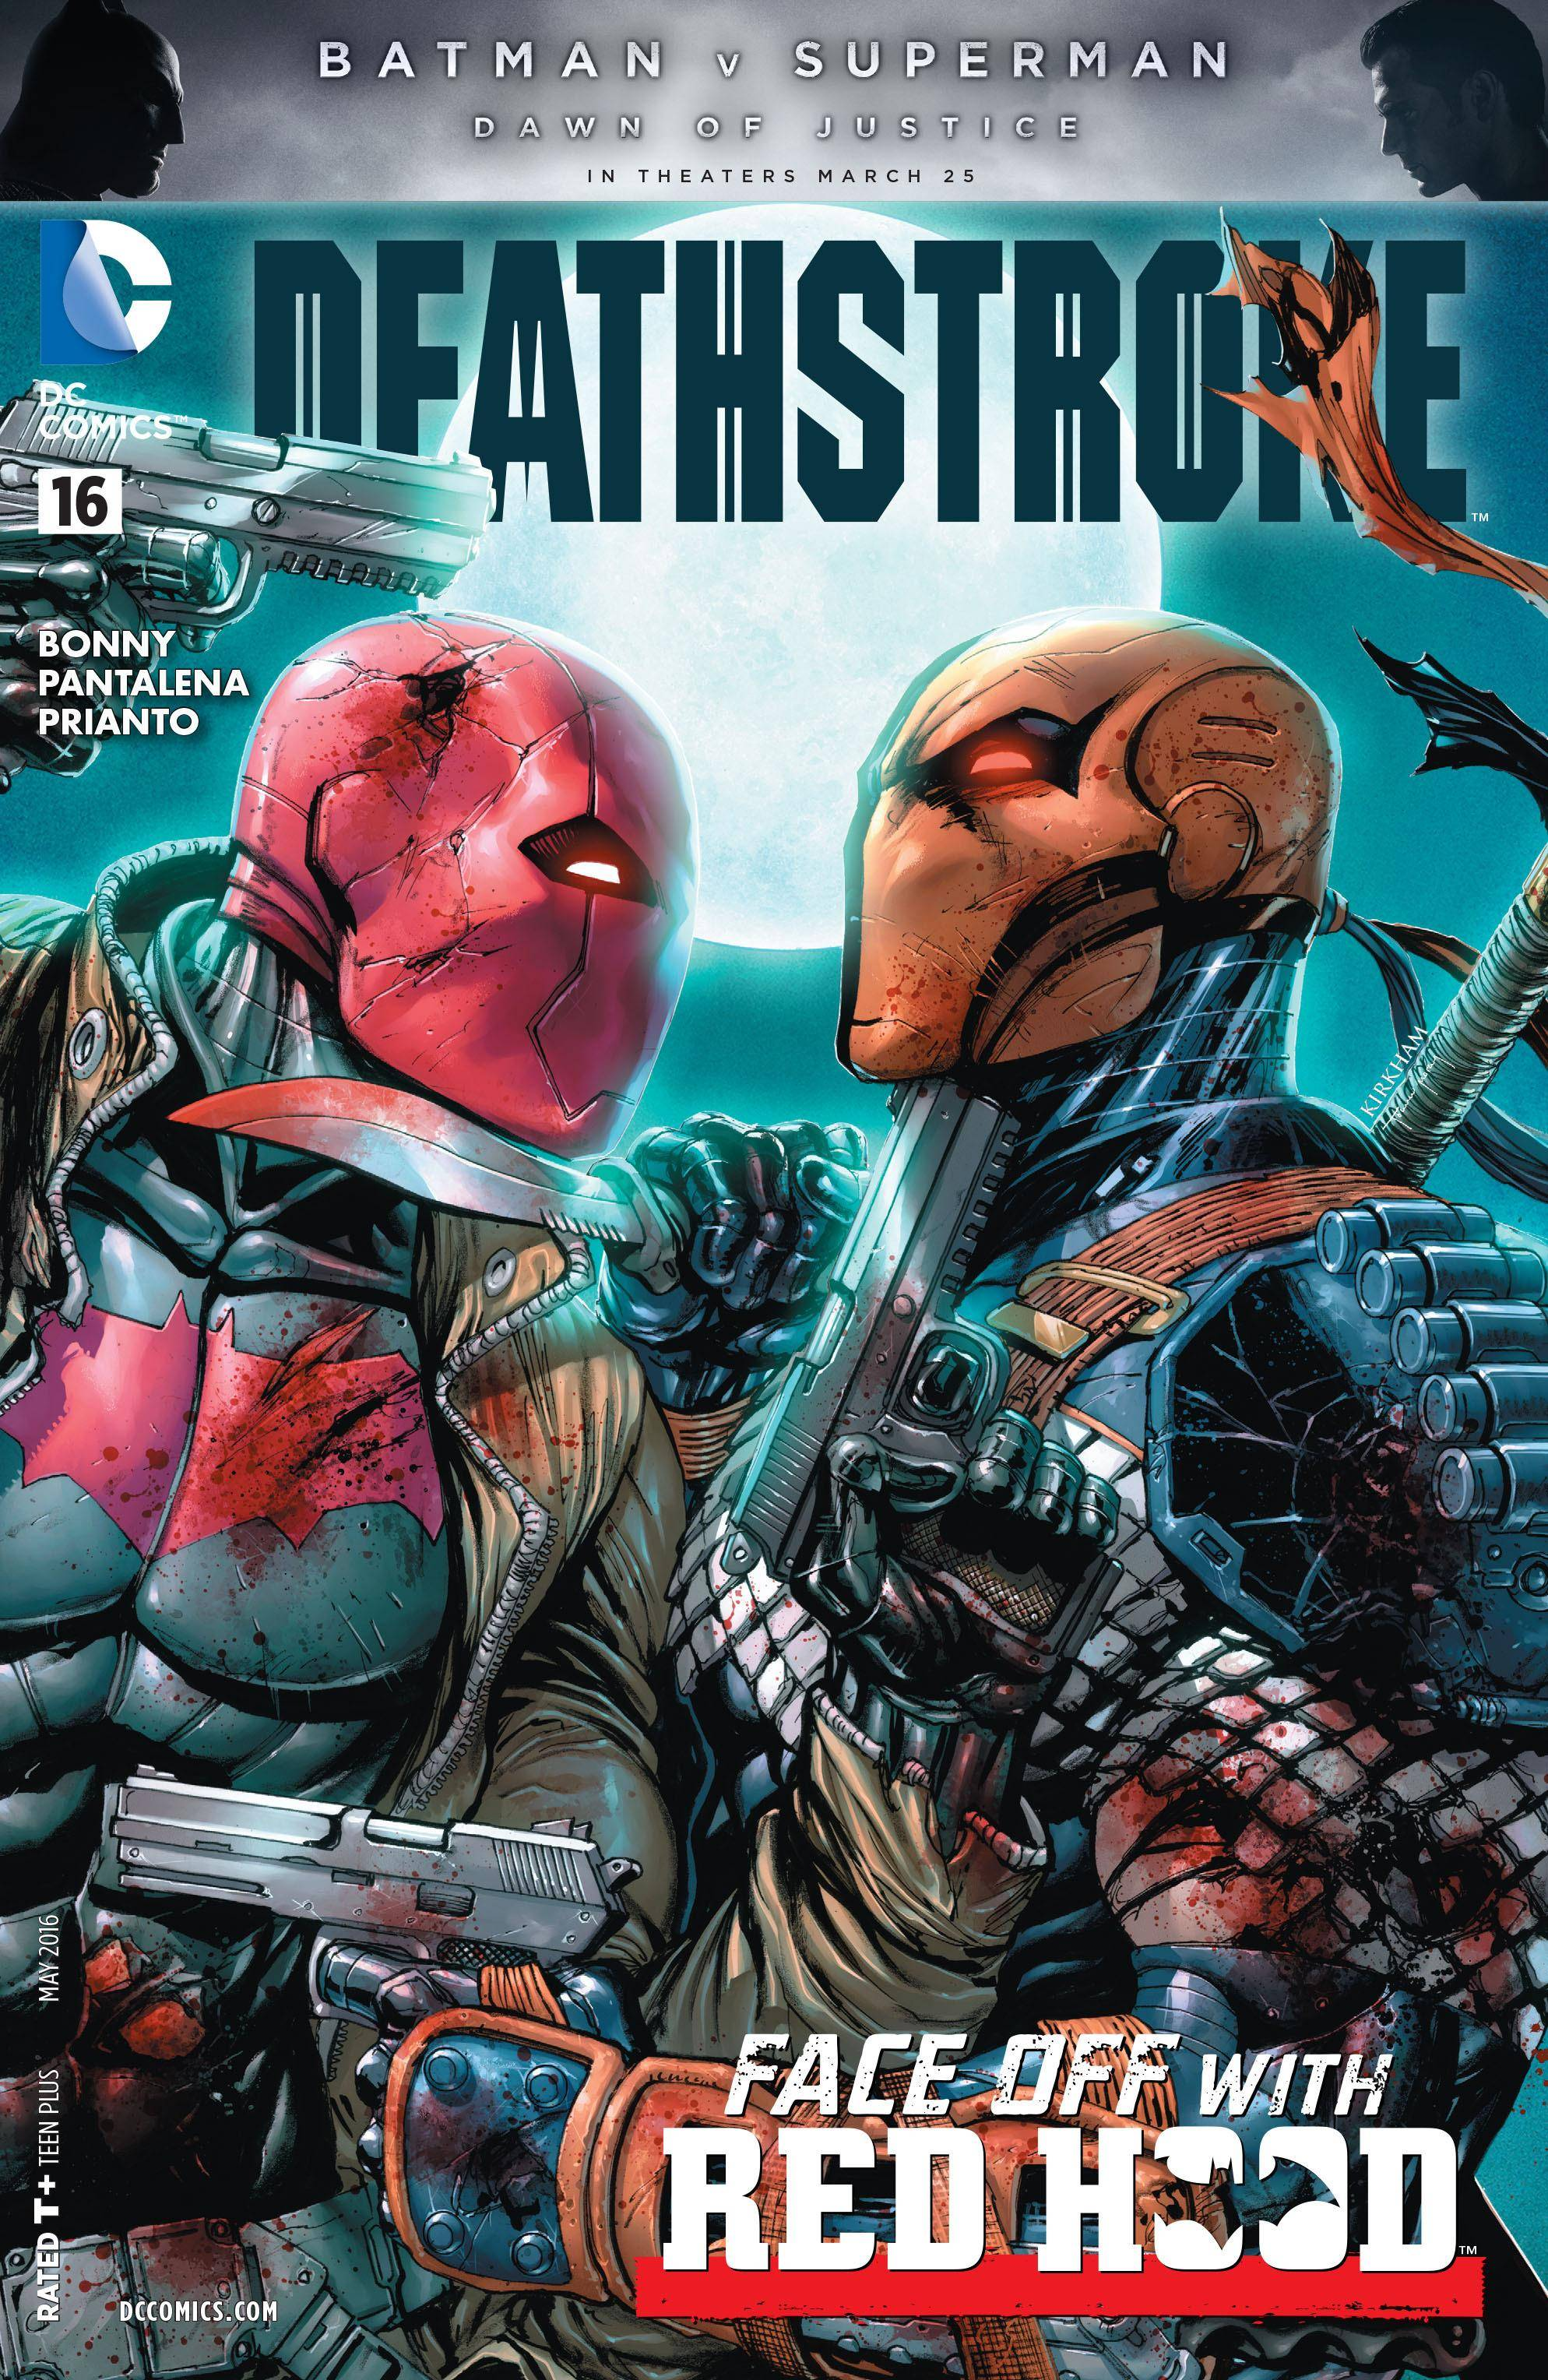 Deathstroke 016 2016 2 covers digital